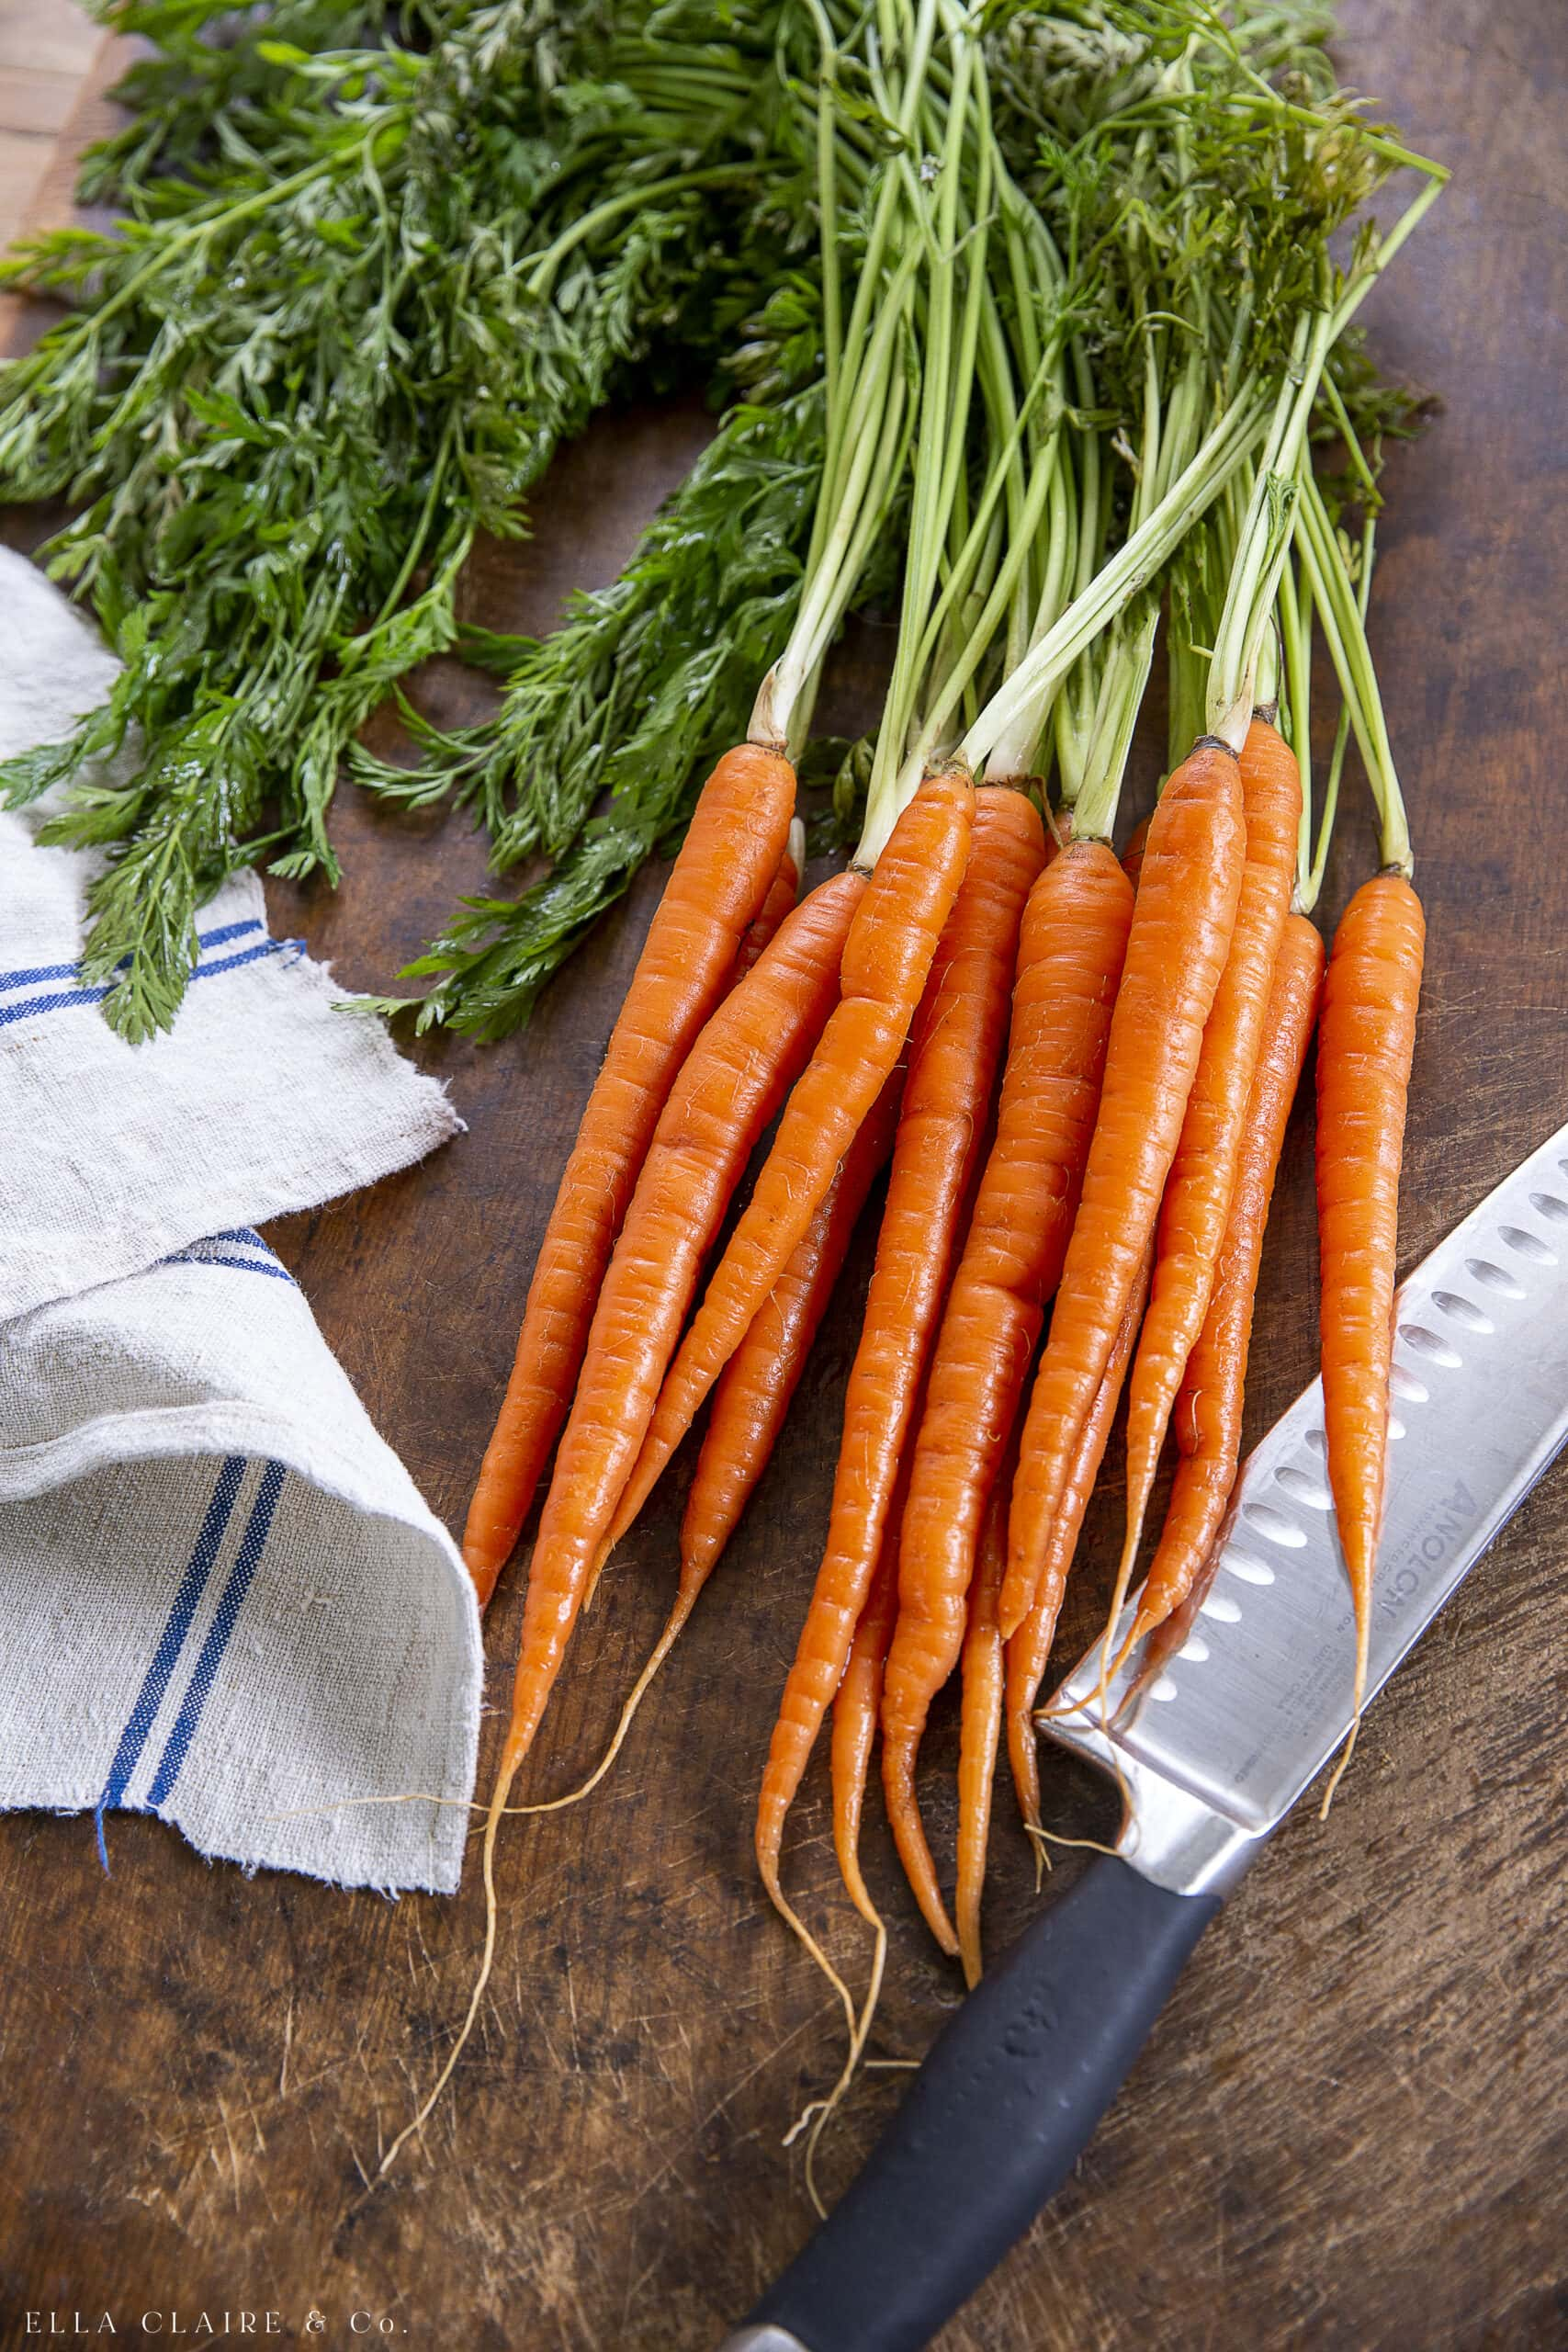 cutting off the tops and ends of carrots